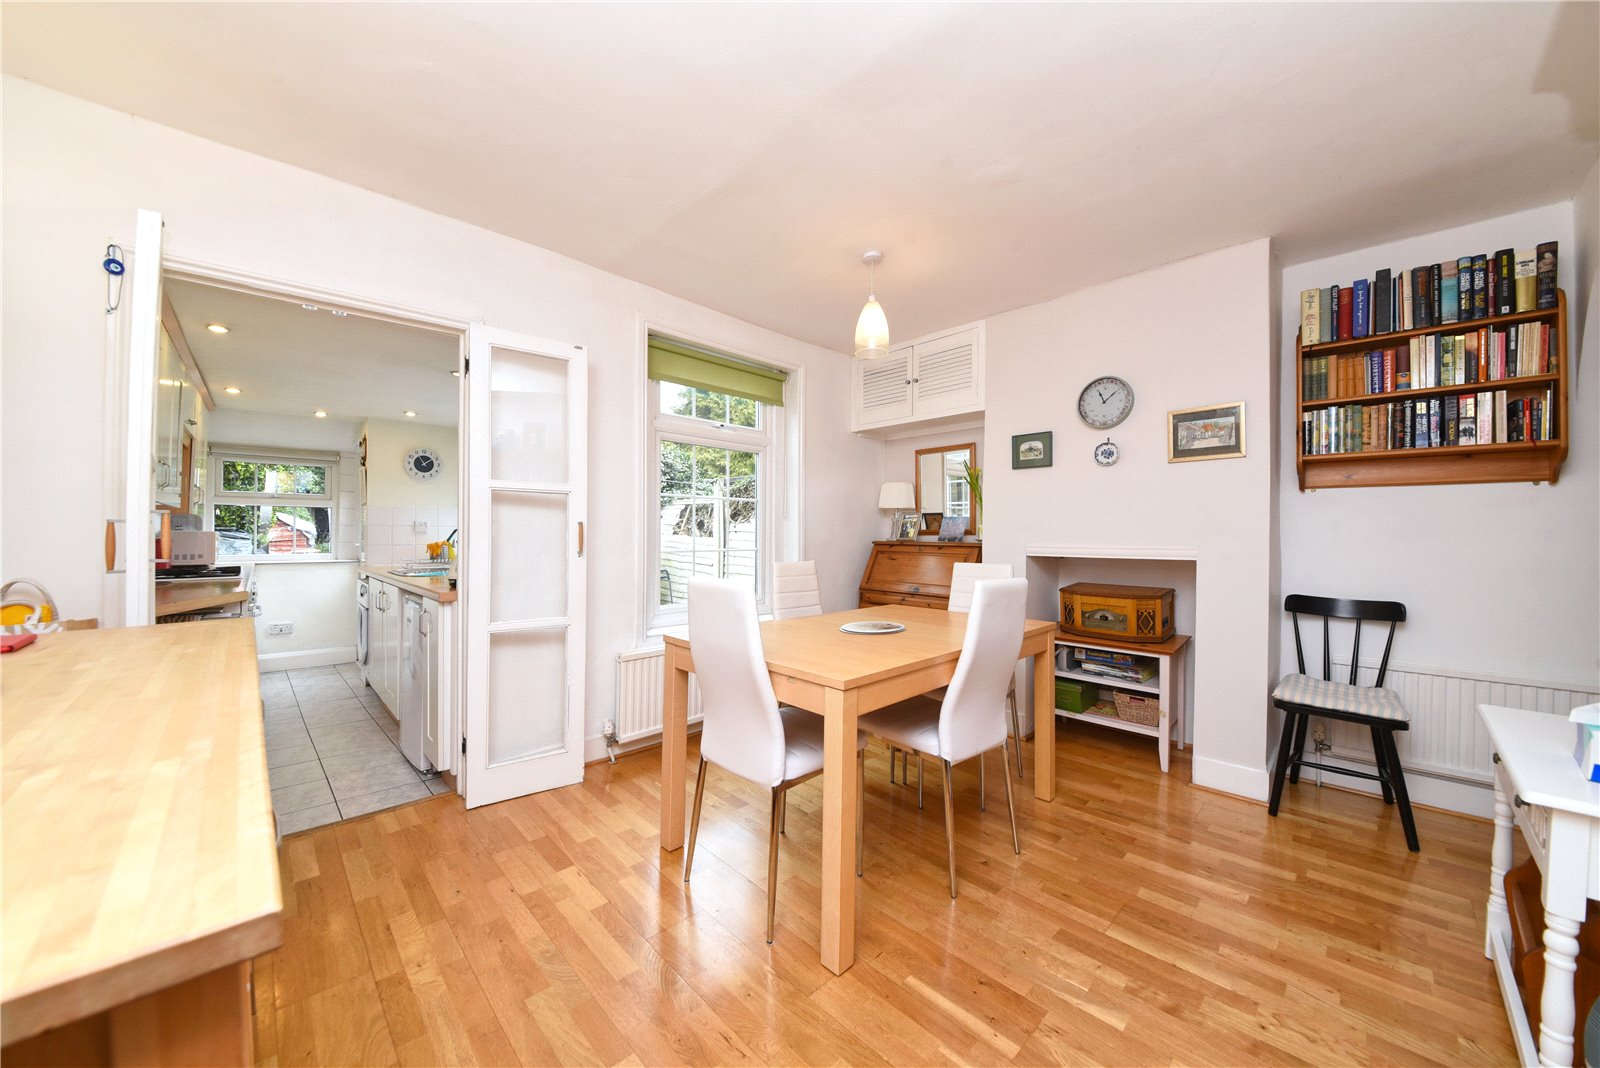 2 bed house for sale in London, N12 9JN 0